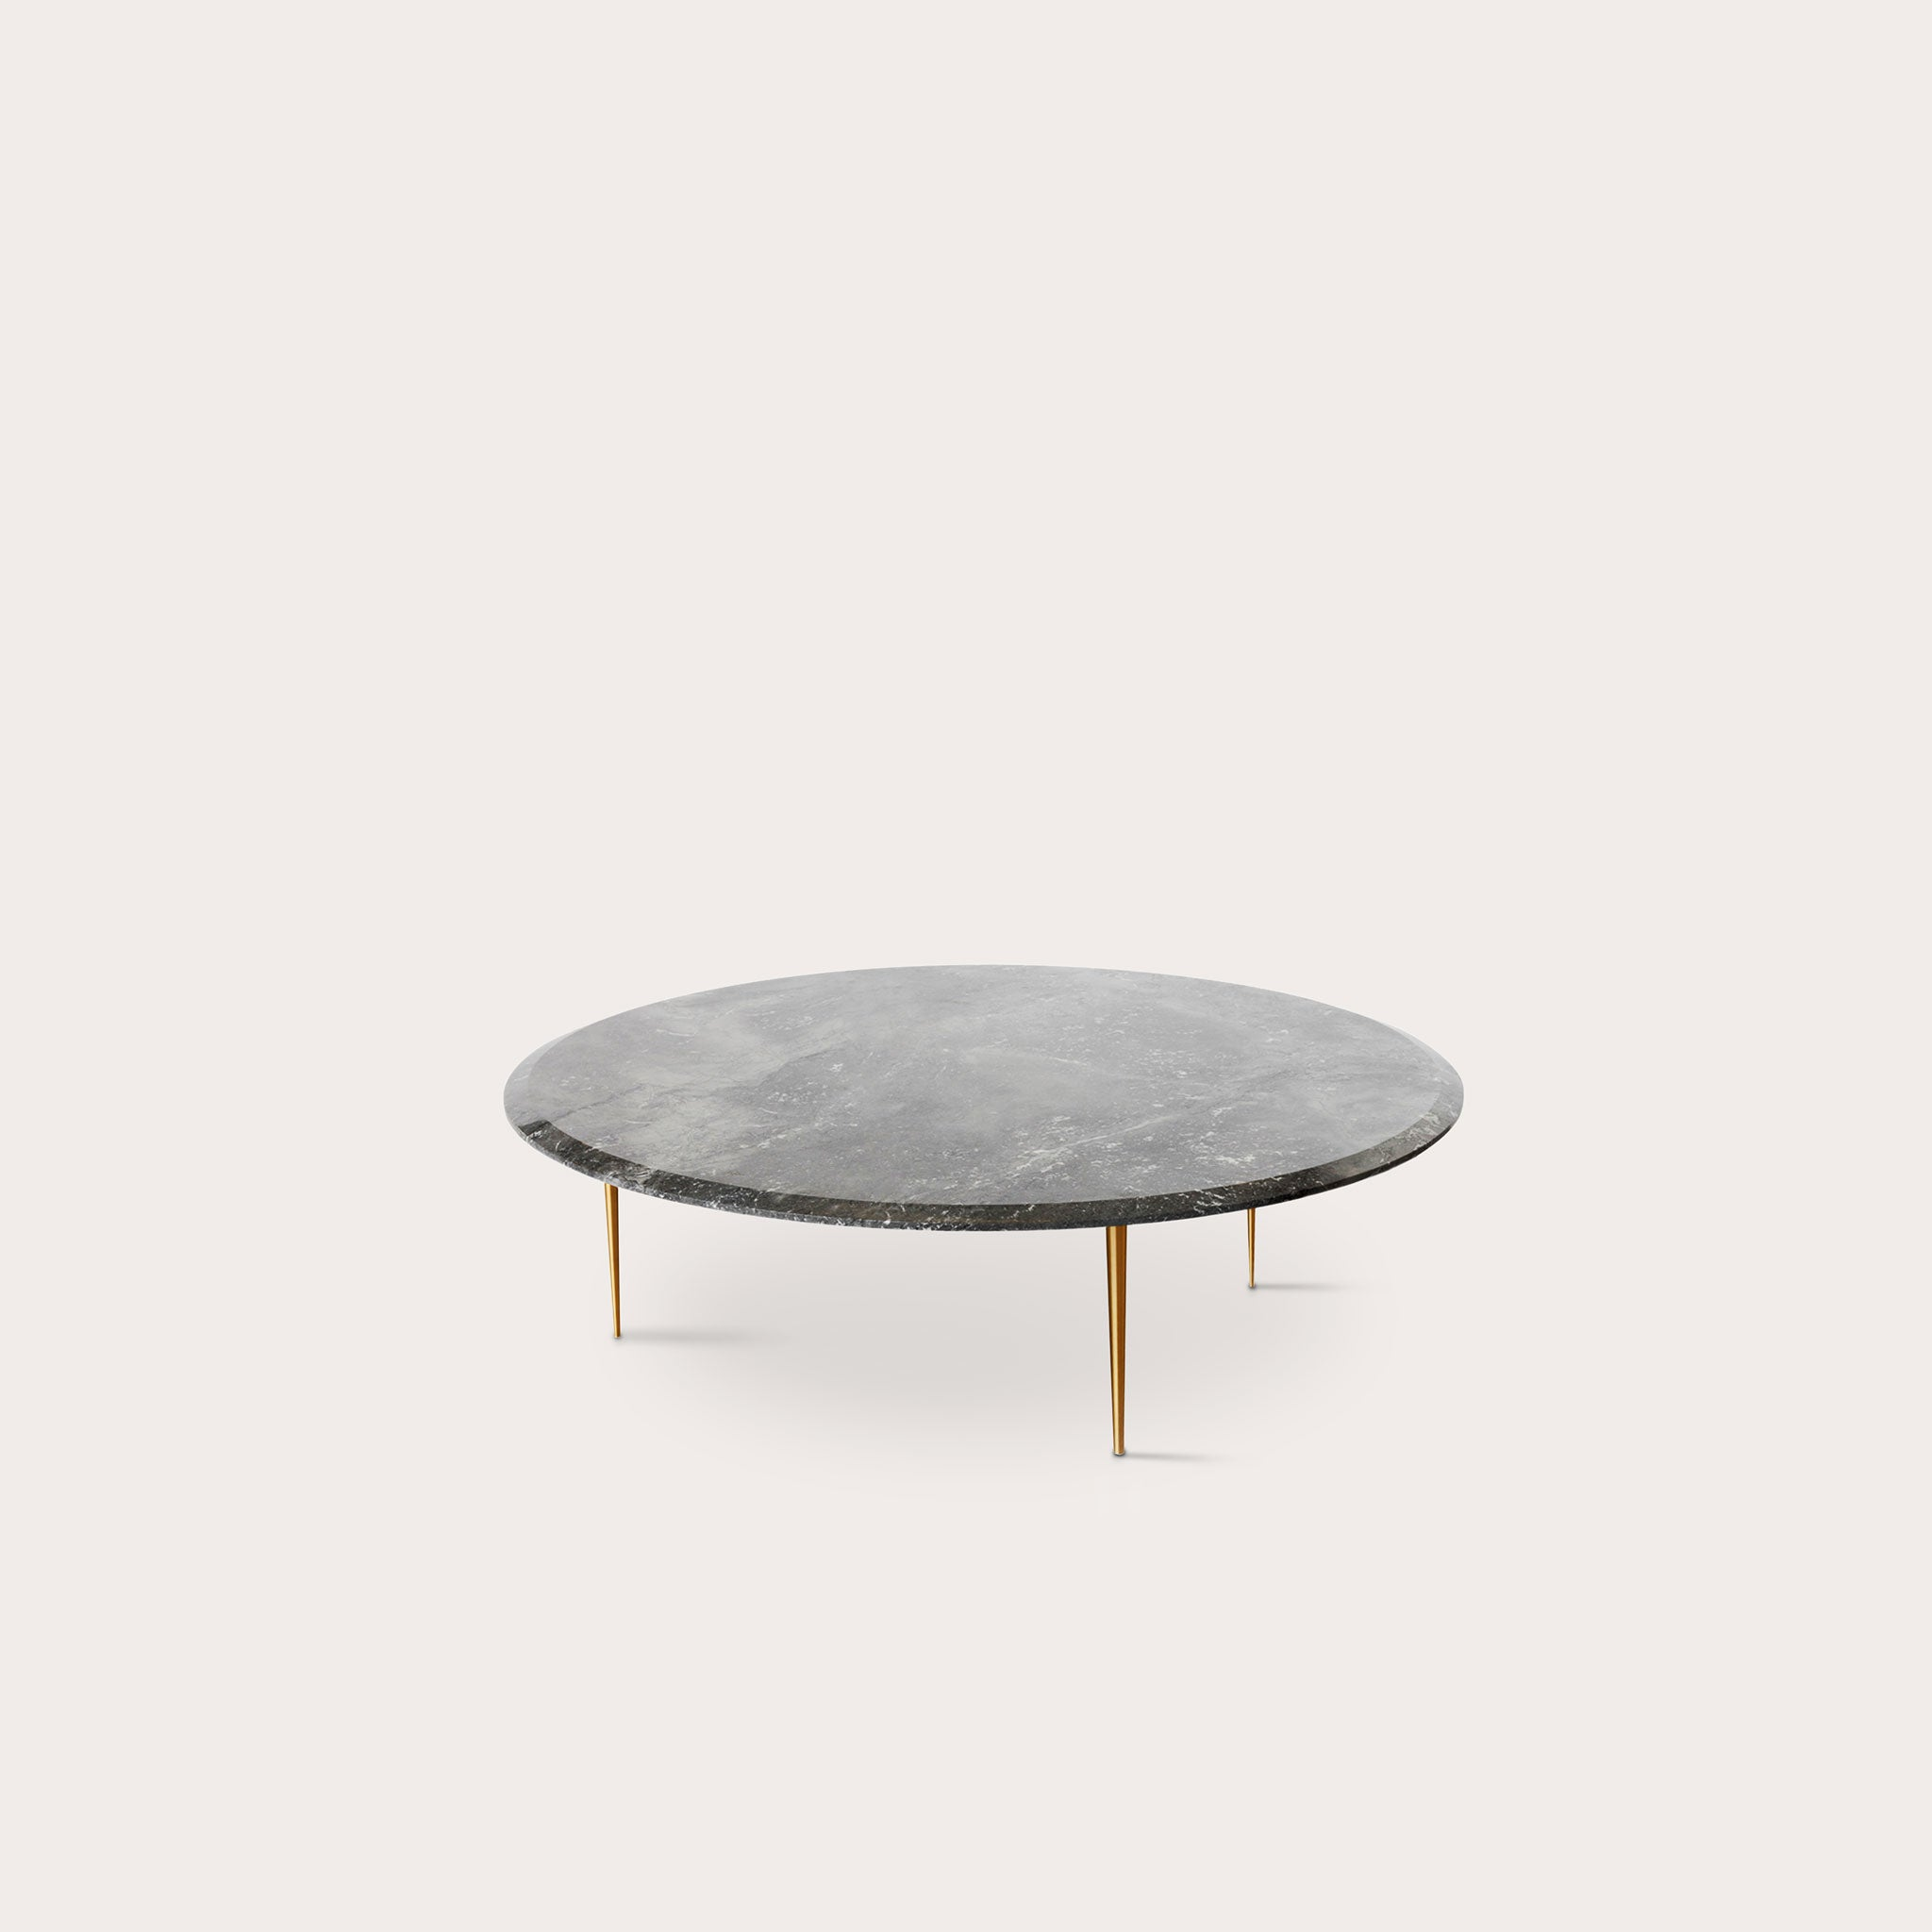 Moon Coffee Tables Simone Coste Designer Furniture Sku: 992-230-10078